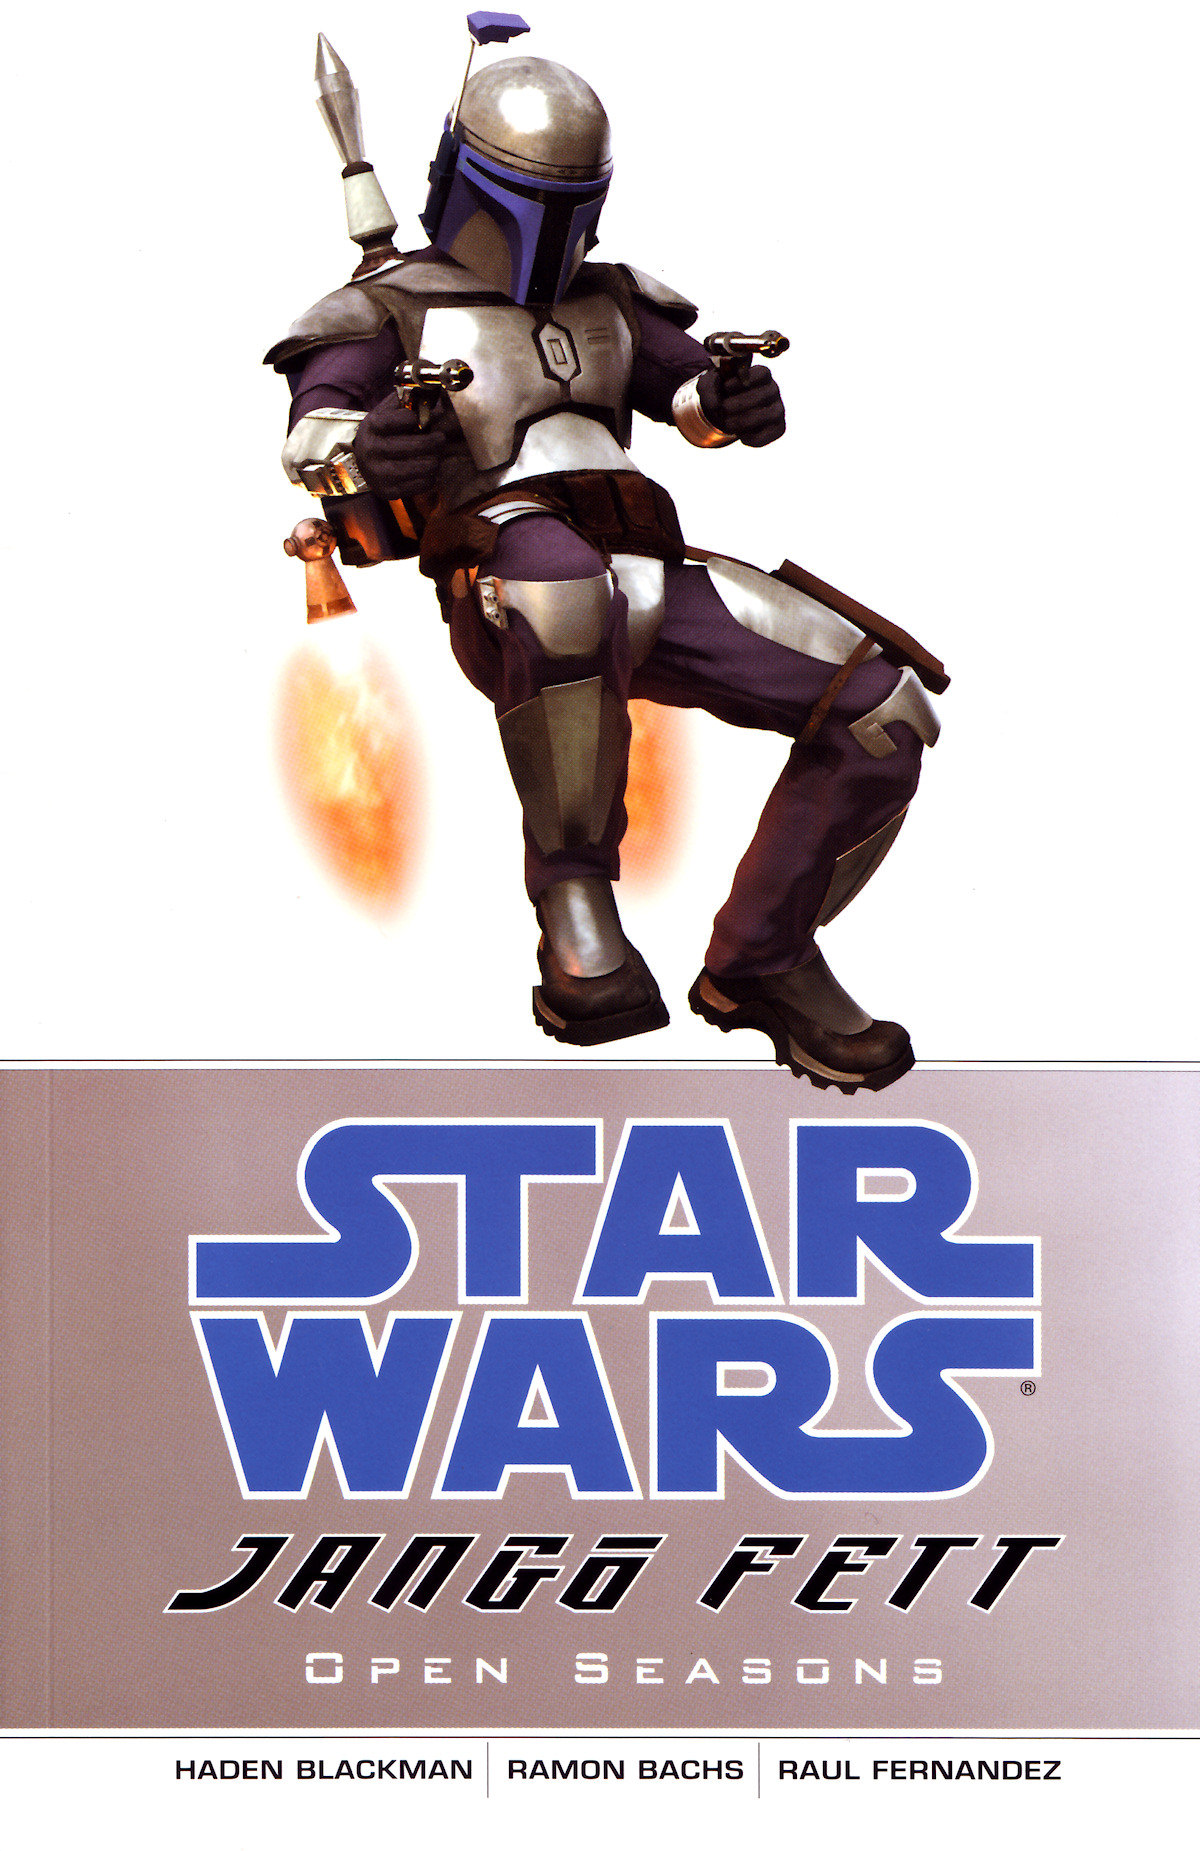 Star Wars   Jango Fett   Open Seasons (Dark Horse 2002)   TPB preview 0